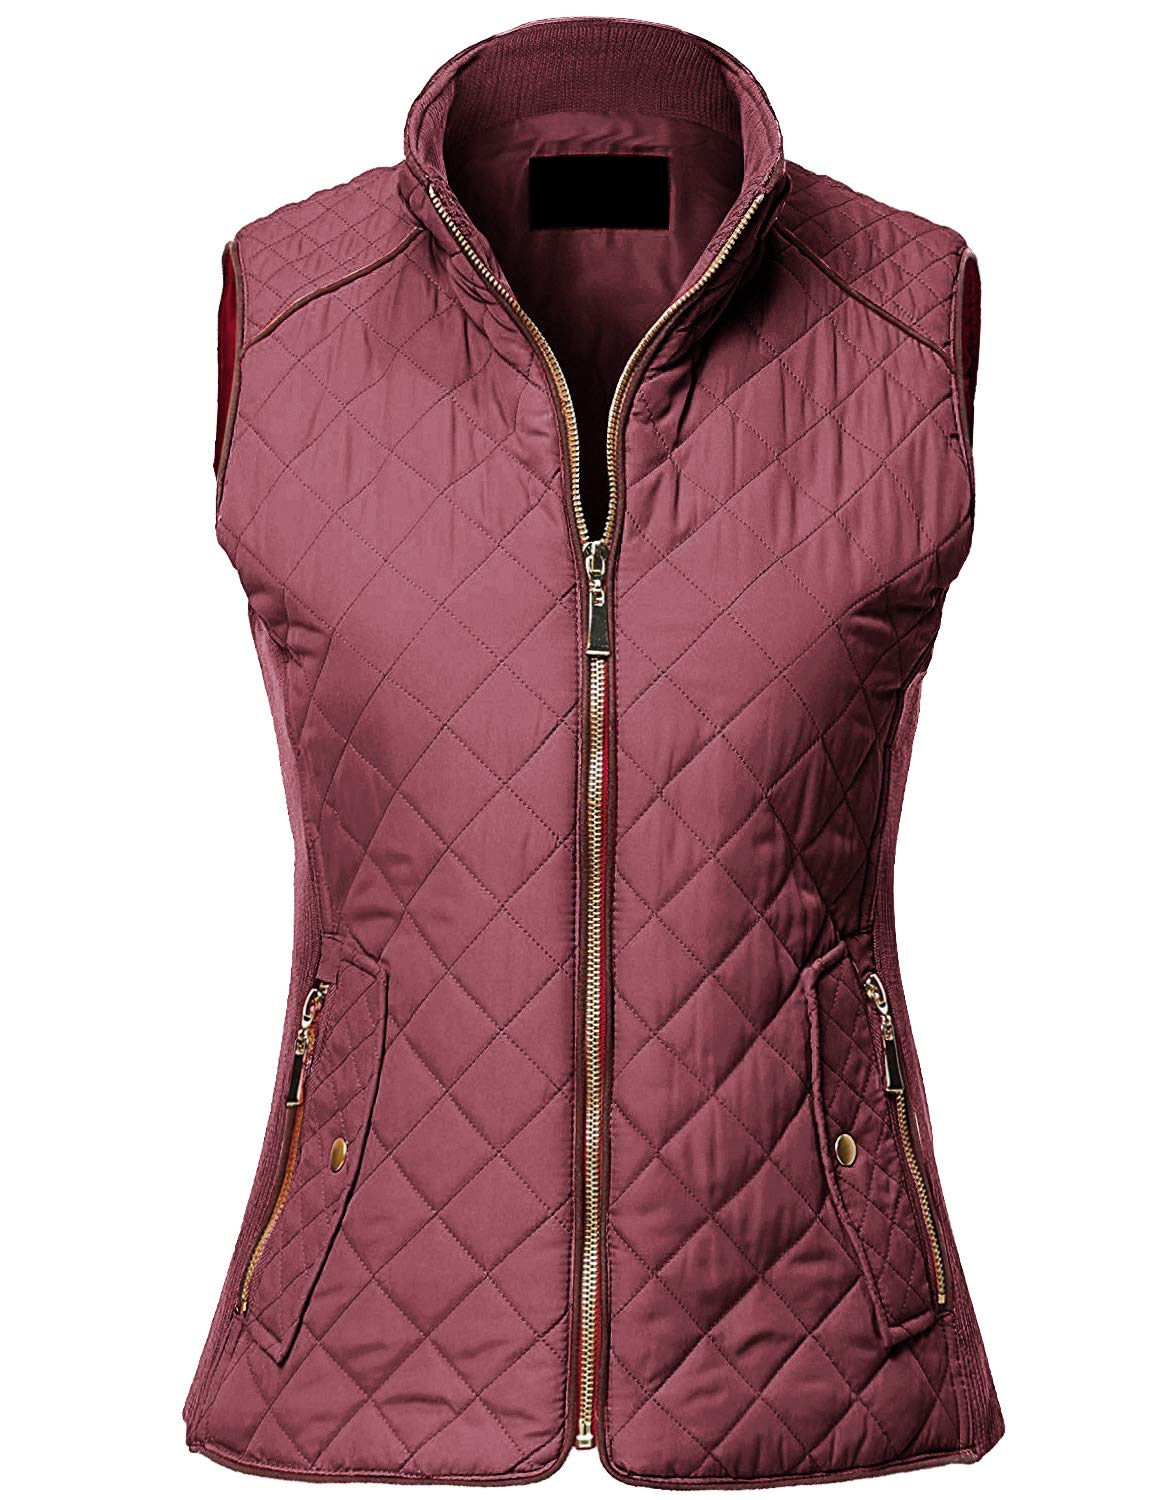 MAYSIX APPAREL Sleeveless Lightweight Zip Up Quilted Padding Vest Jacket for Women REDBEAN 3XL